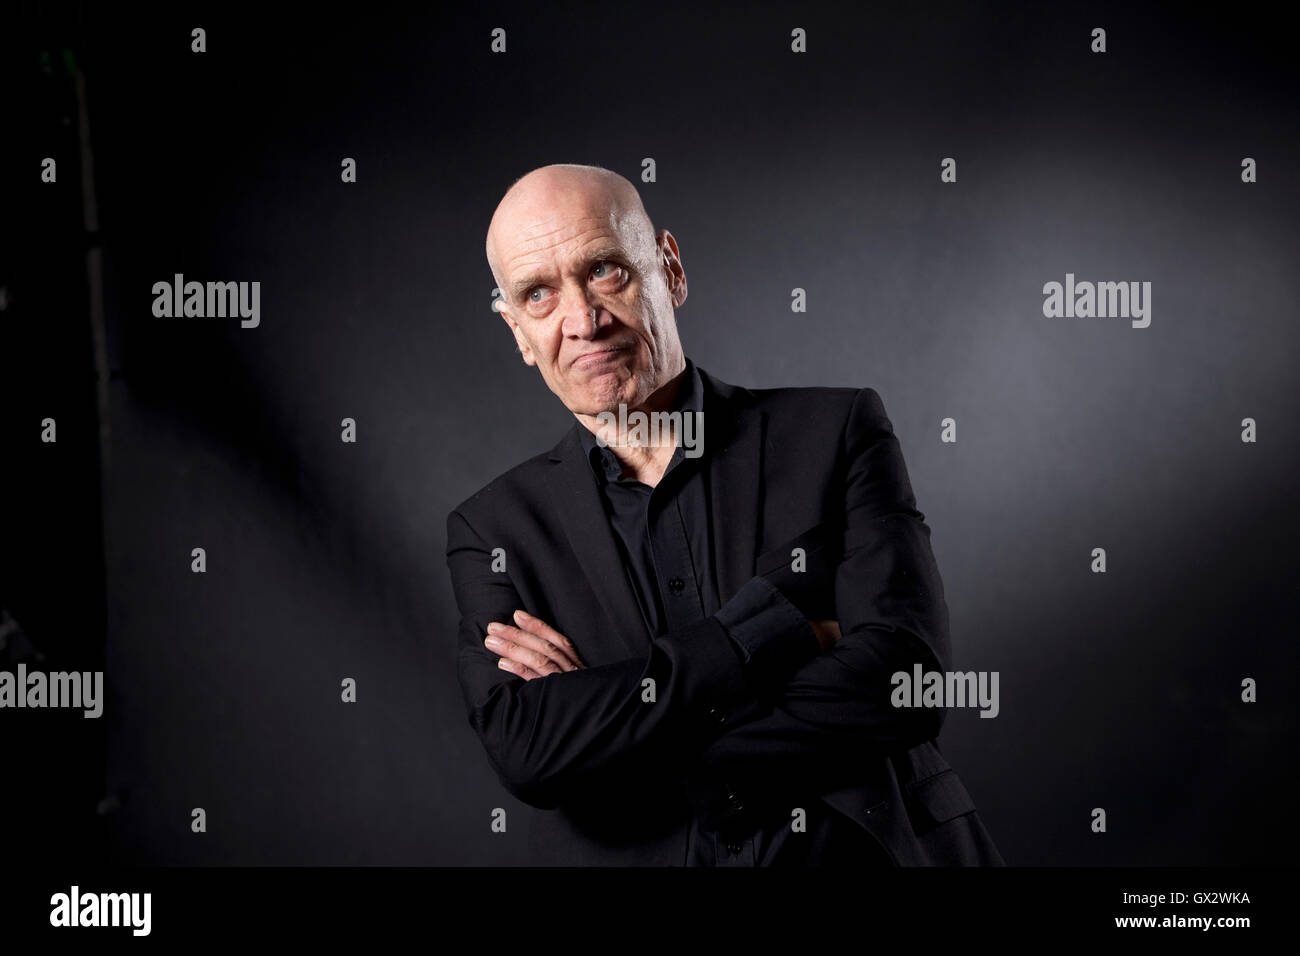 Wilko Johnson, the English singer, guitarist, songwriter and author, at the Edinburgh International Book Festival. - Stock Image